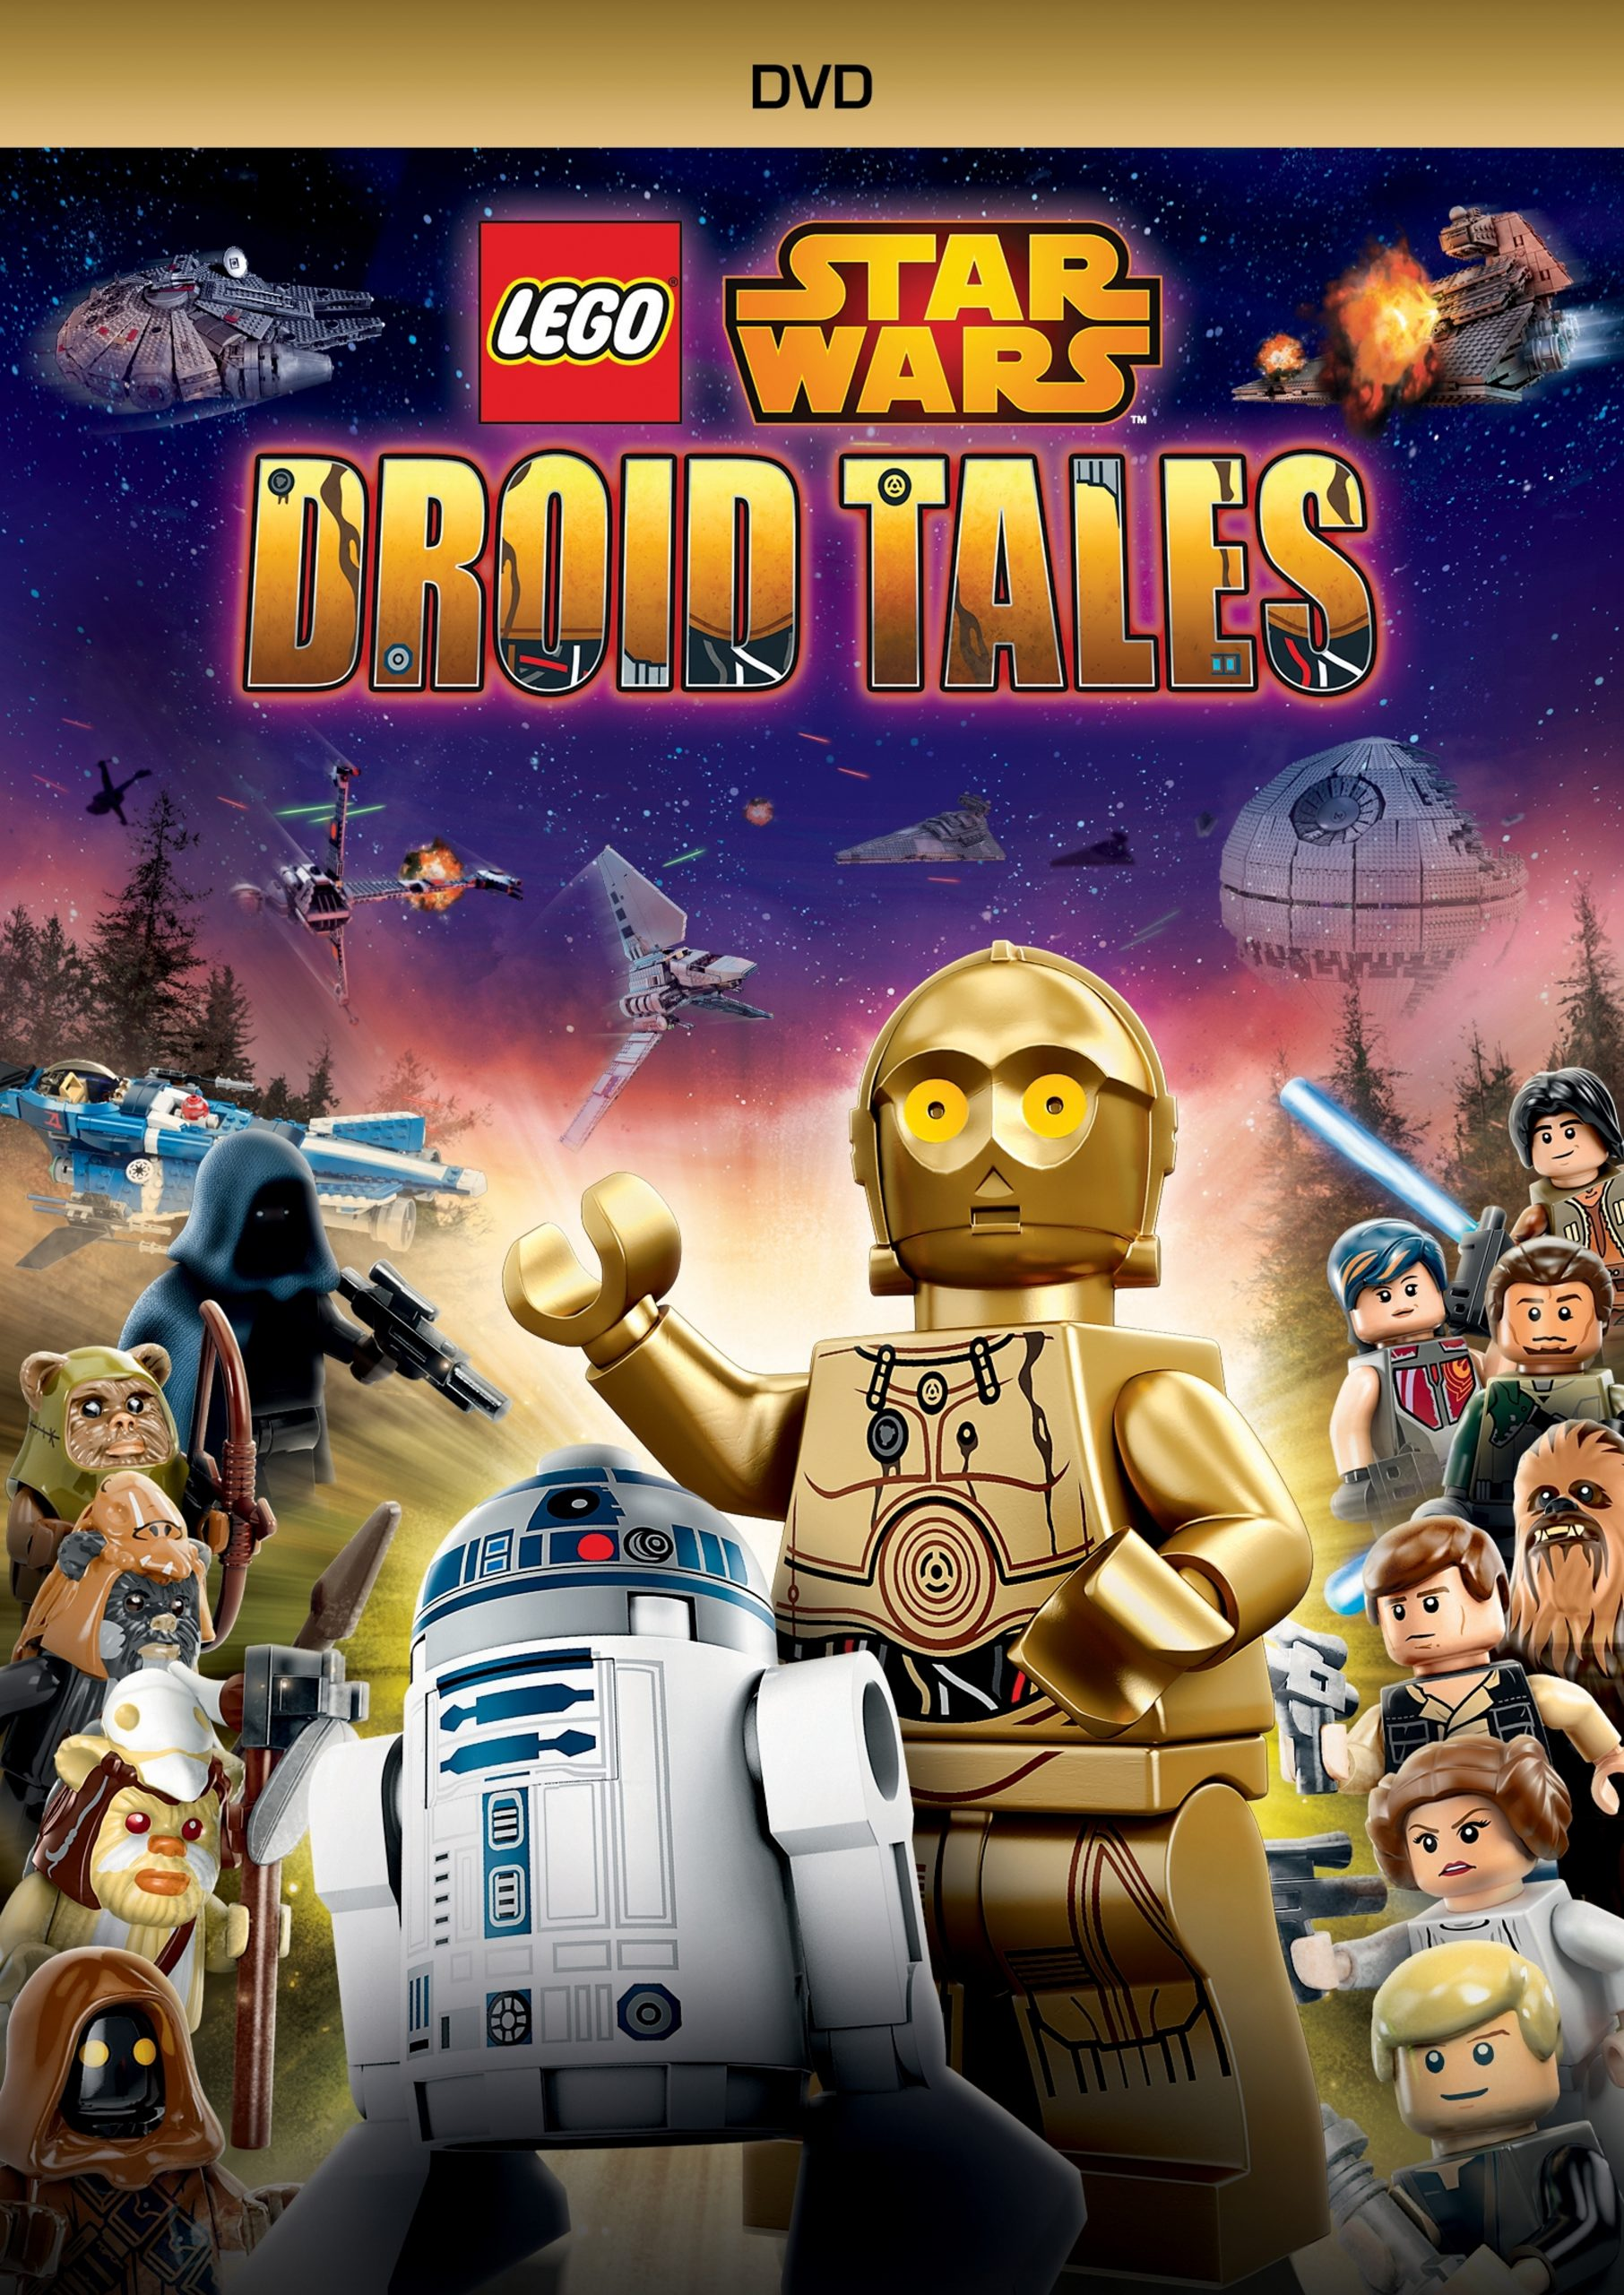 lego 5005061 sw droid tales dvd scaled